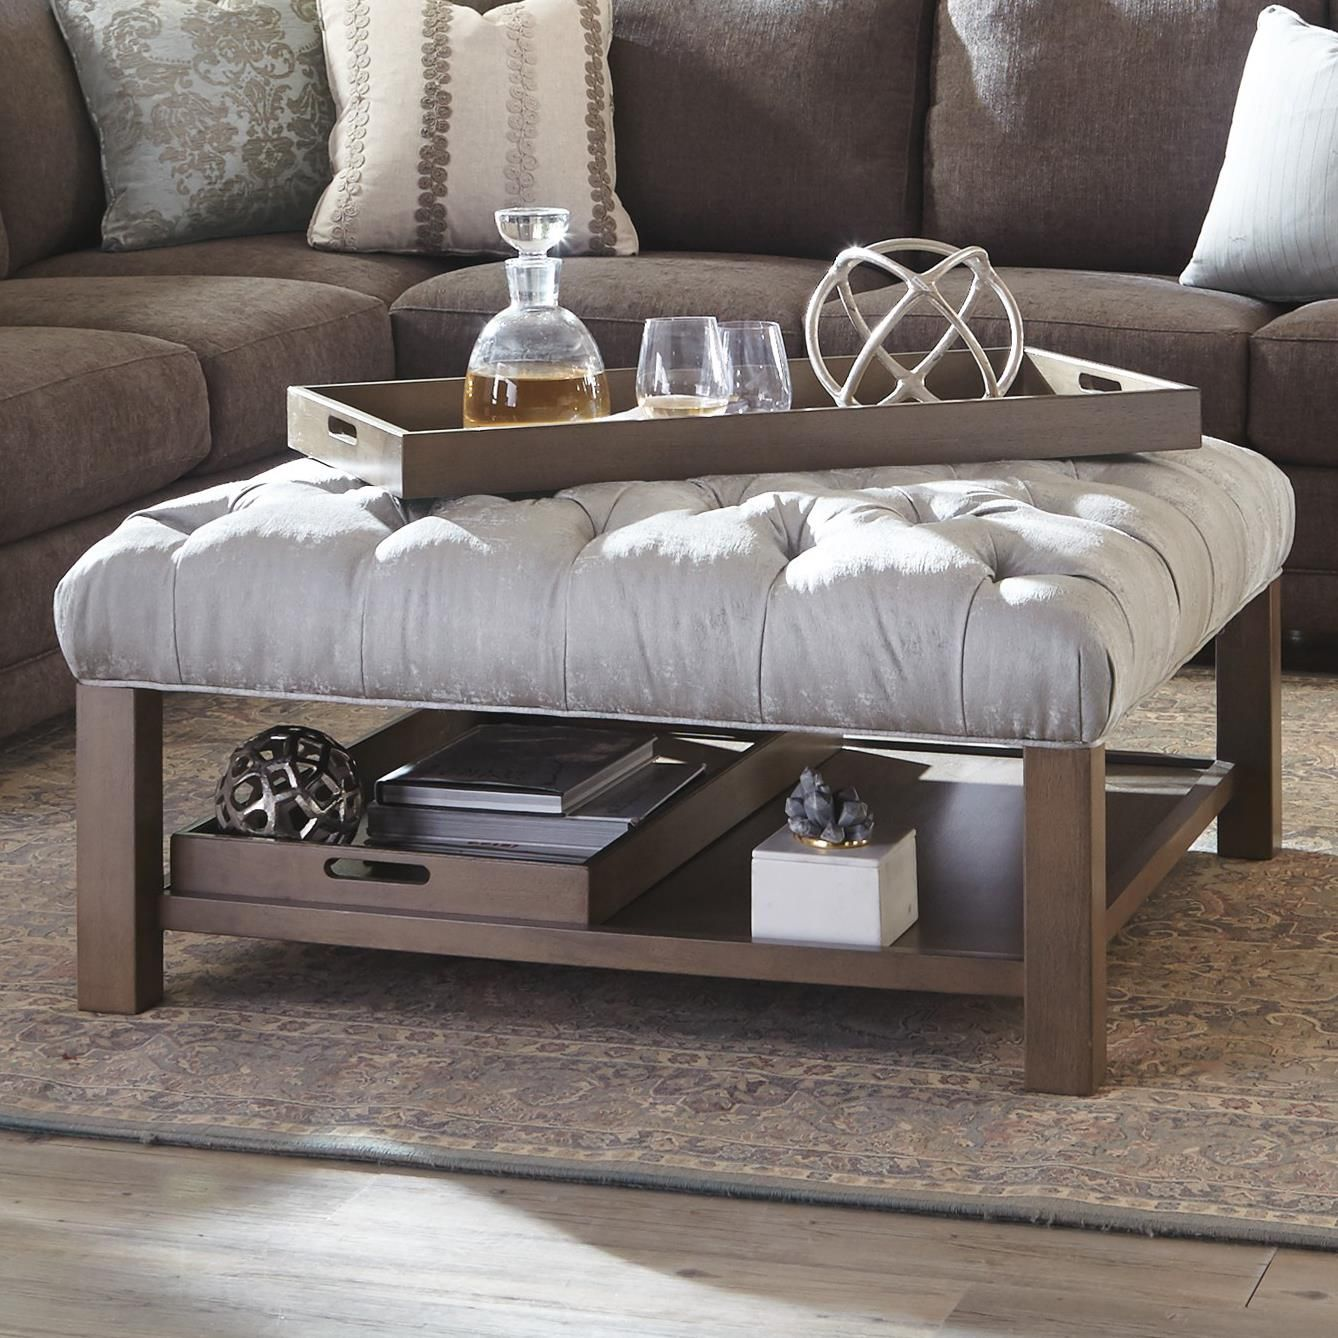 Accent Ottomans Ottoman With Storage Trays By Craftmaster At